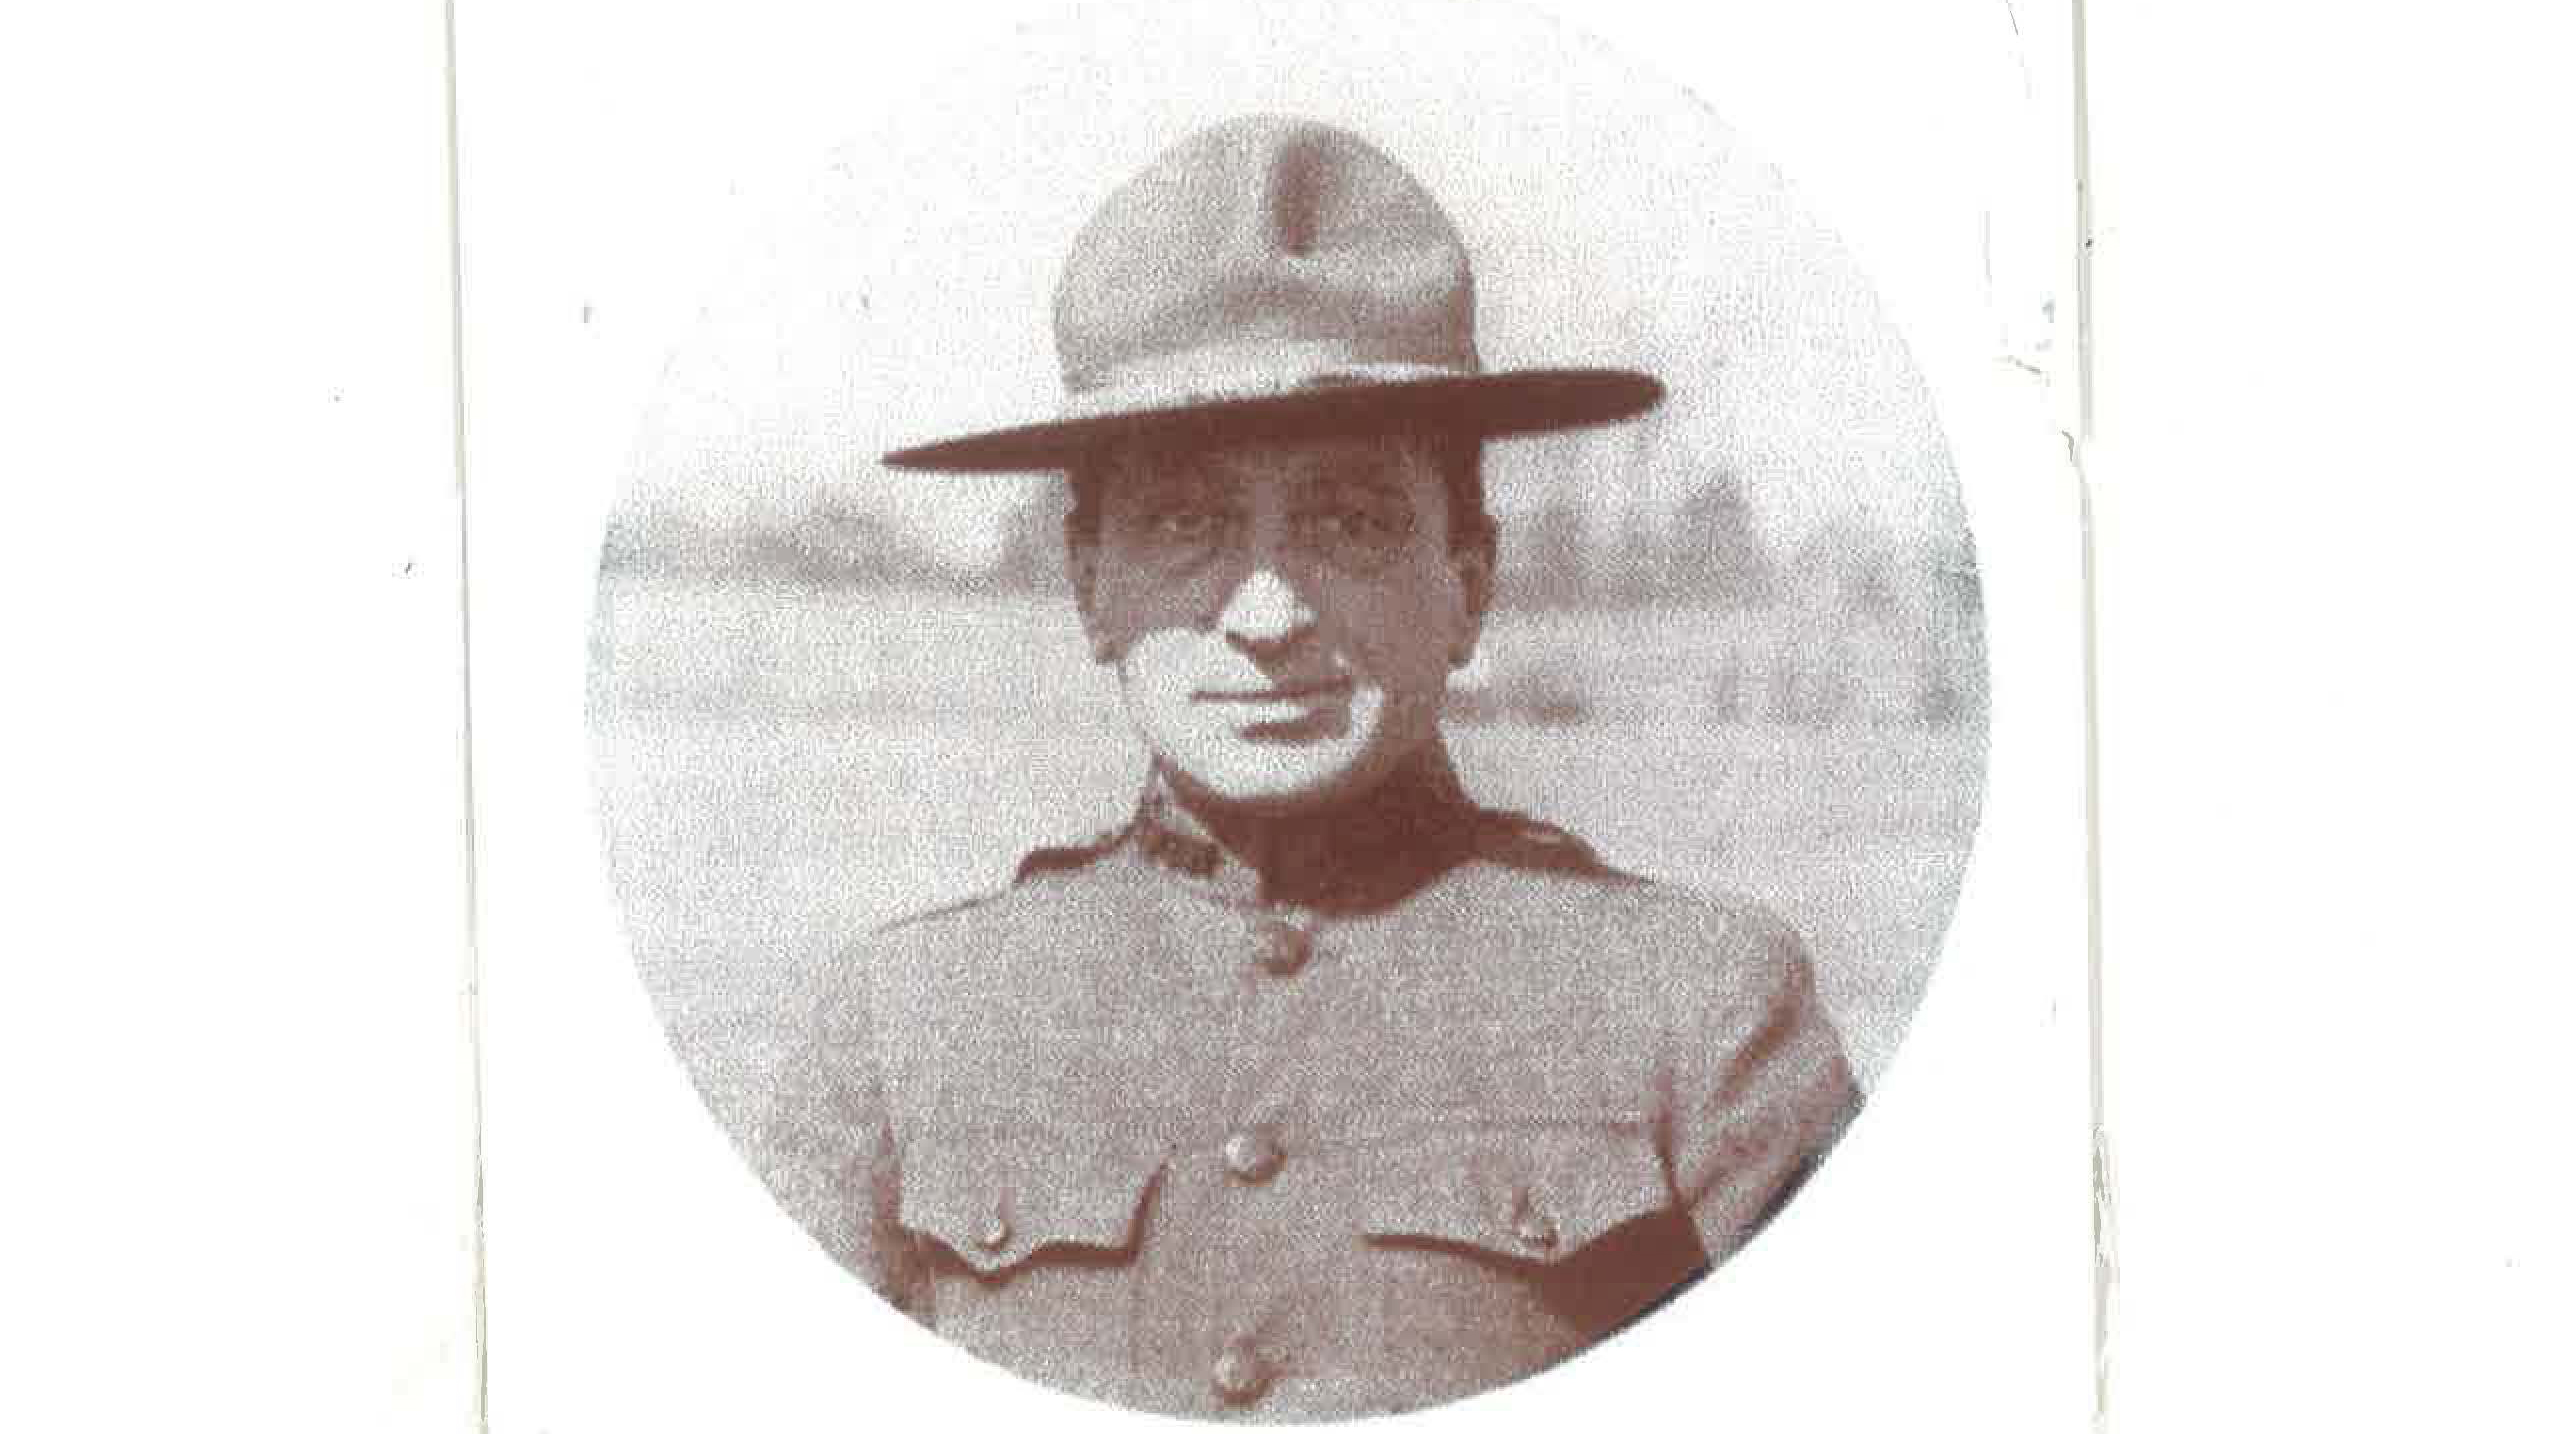 A close up of Frank Roman, wearing a military style hat.